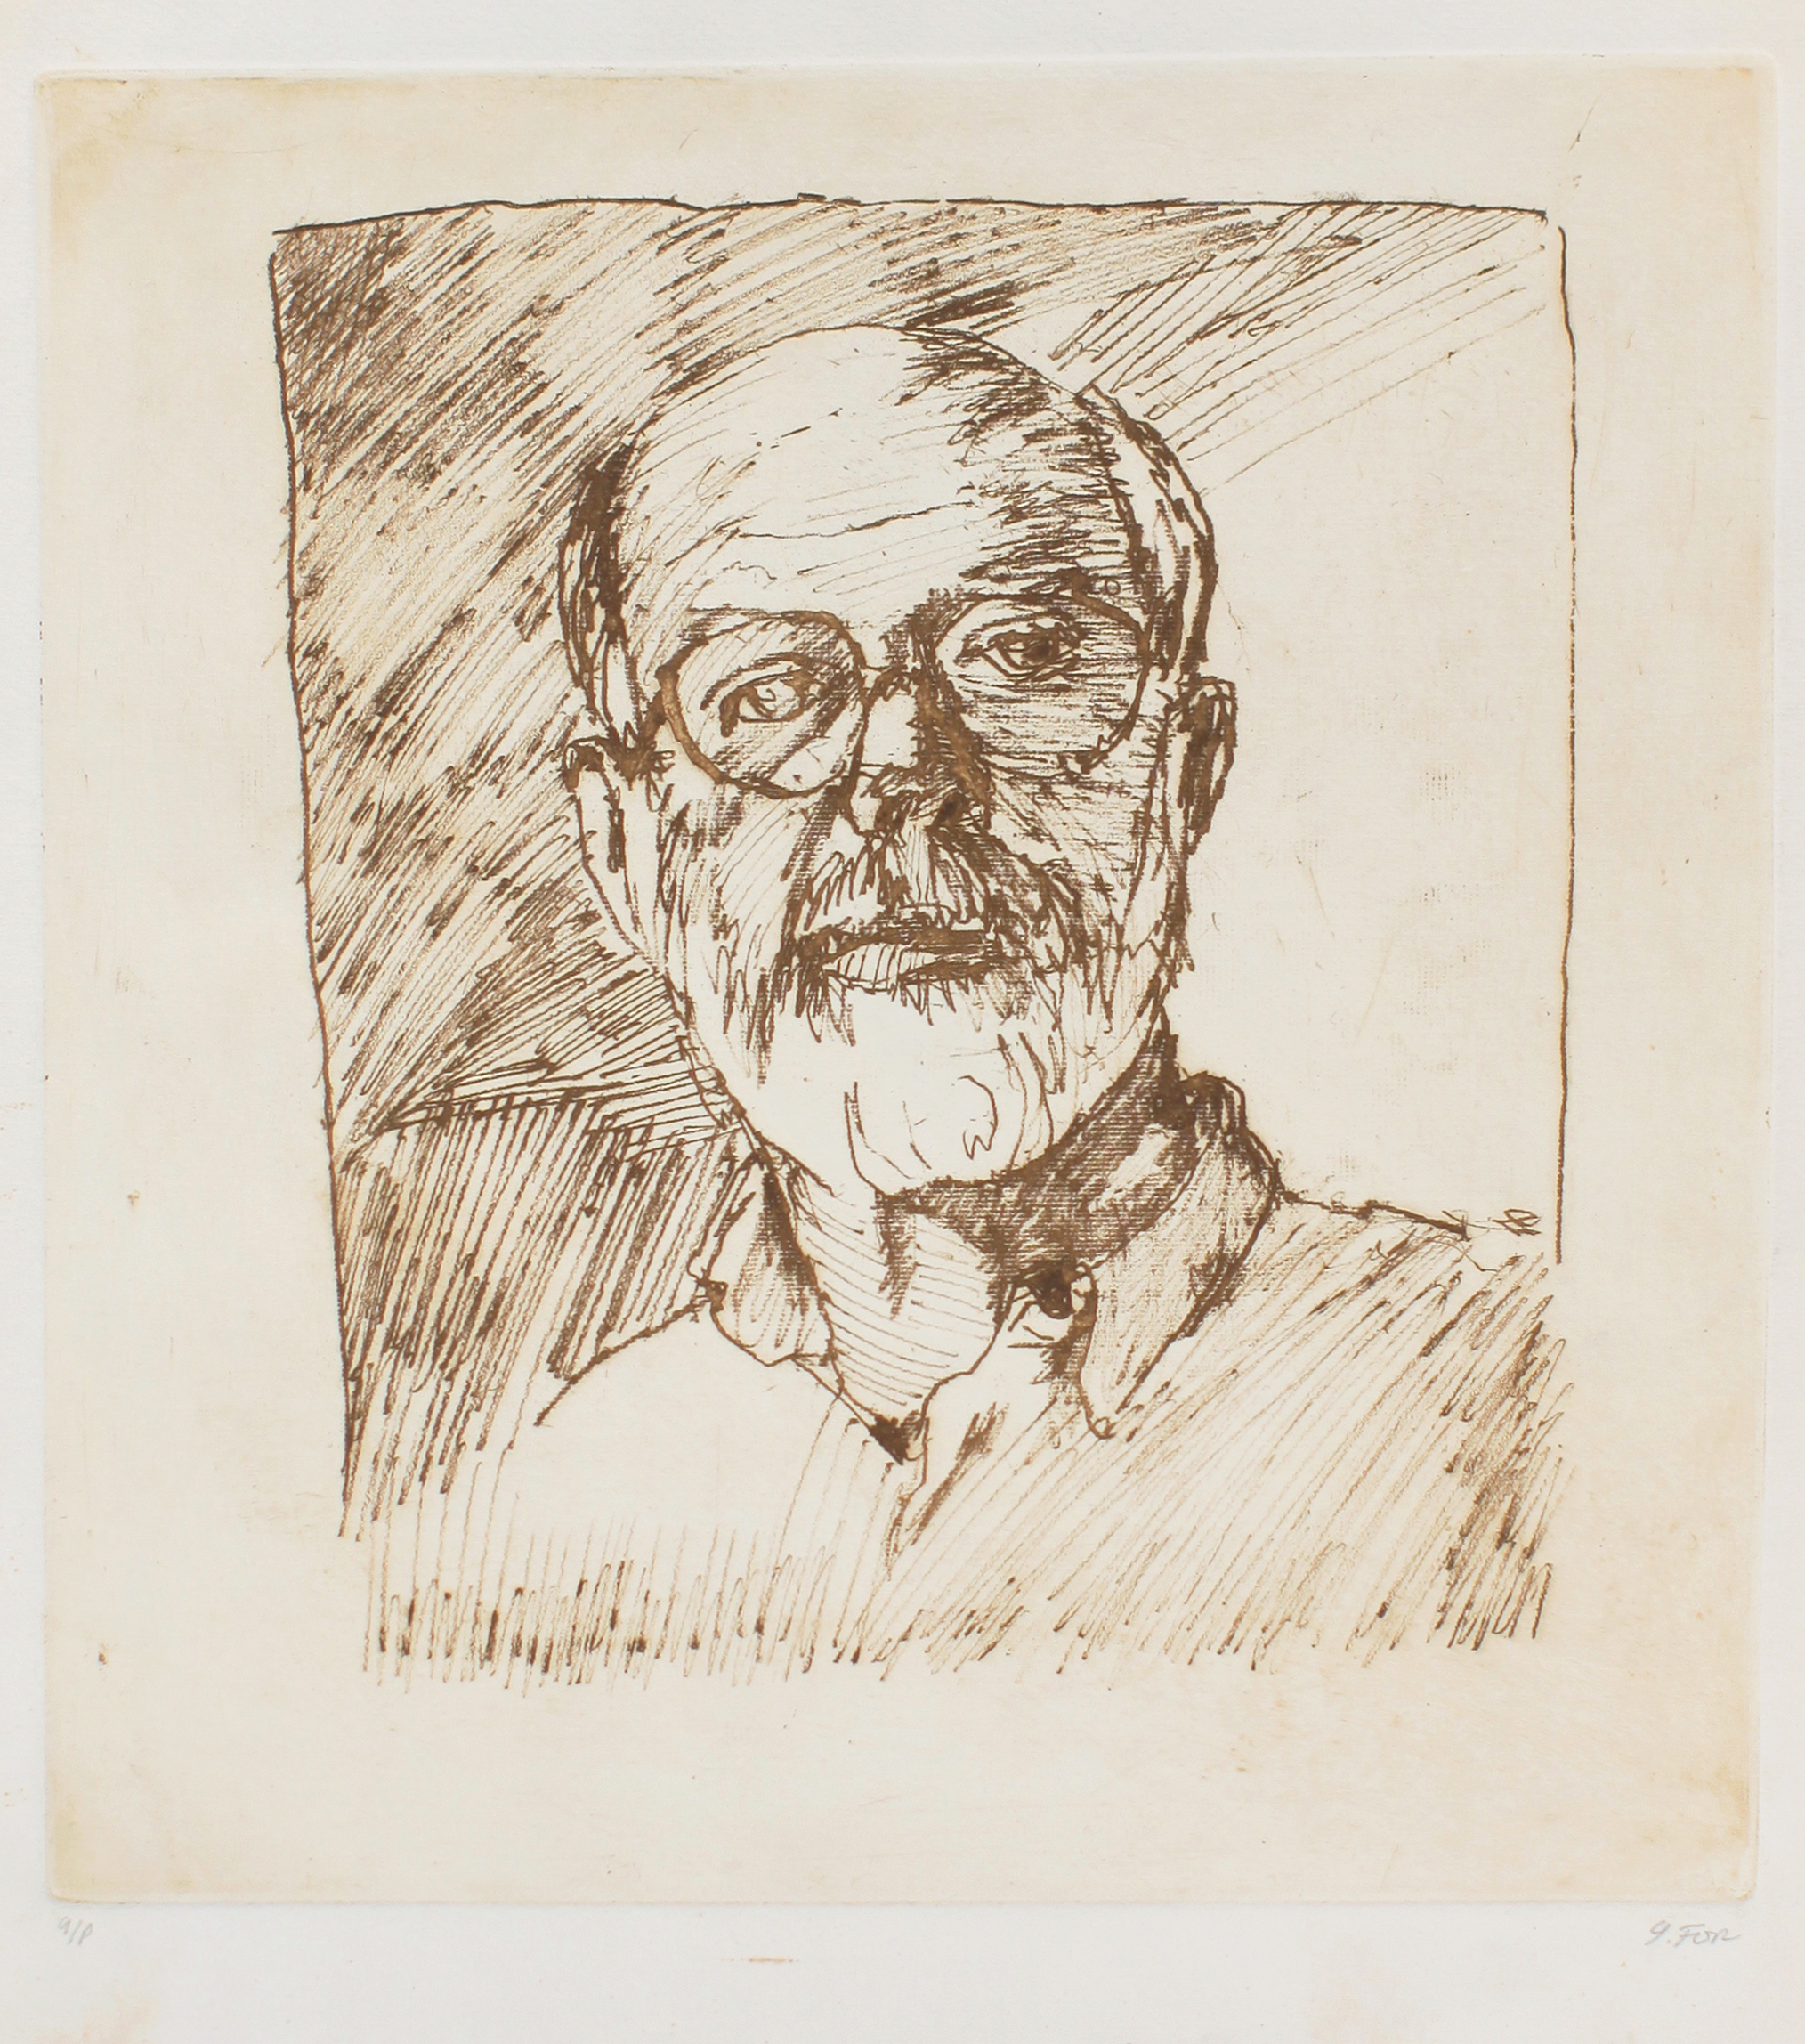 1990s_Self_Portrait_etching_two_aps_paper_18x14in_image_13_12in_WPF427.jpg